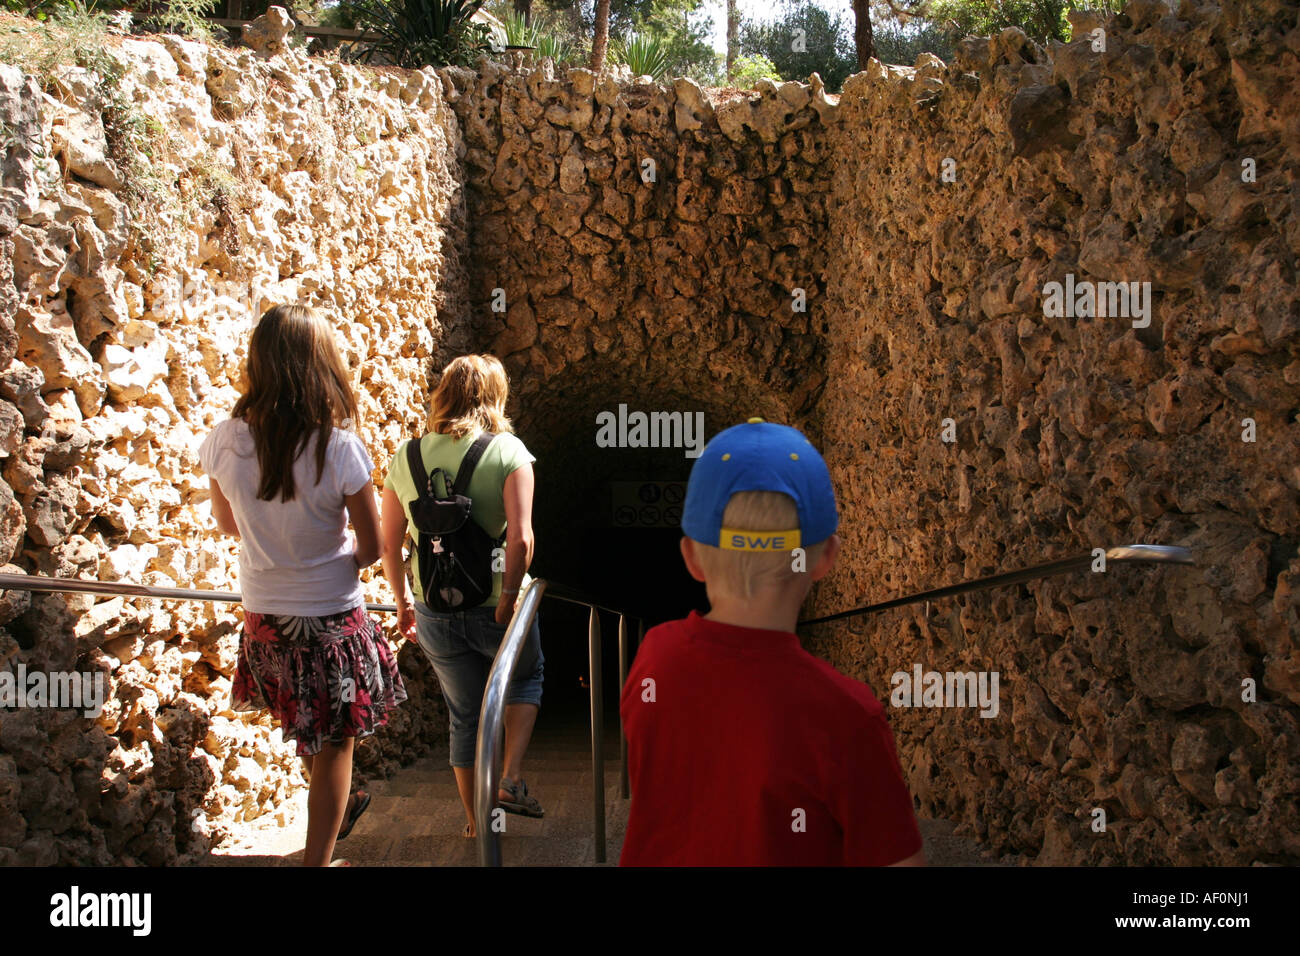 The entrance to Cuevas Del Drach or Coves del Drac, the Caves of the Stock Ph...